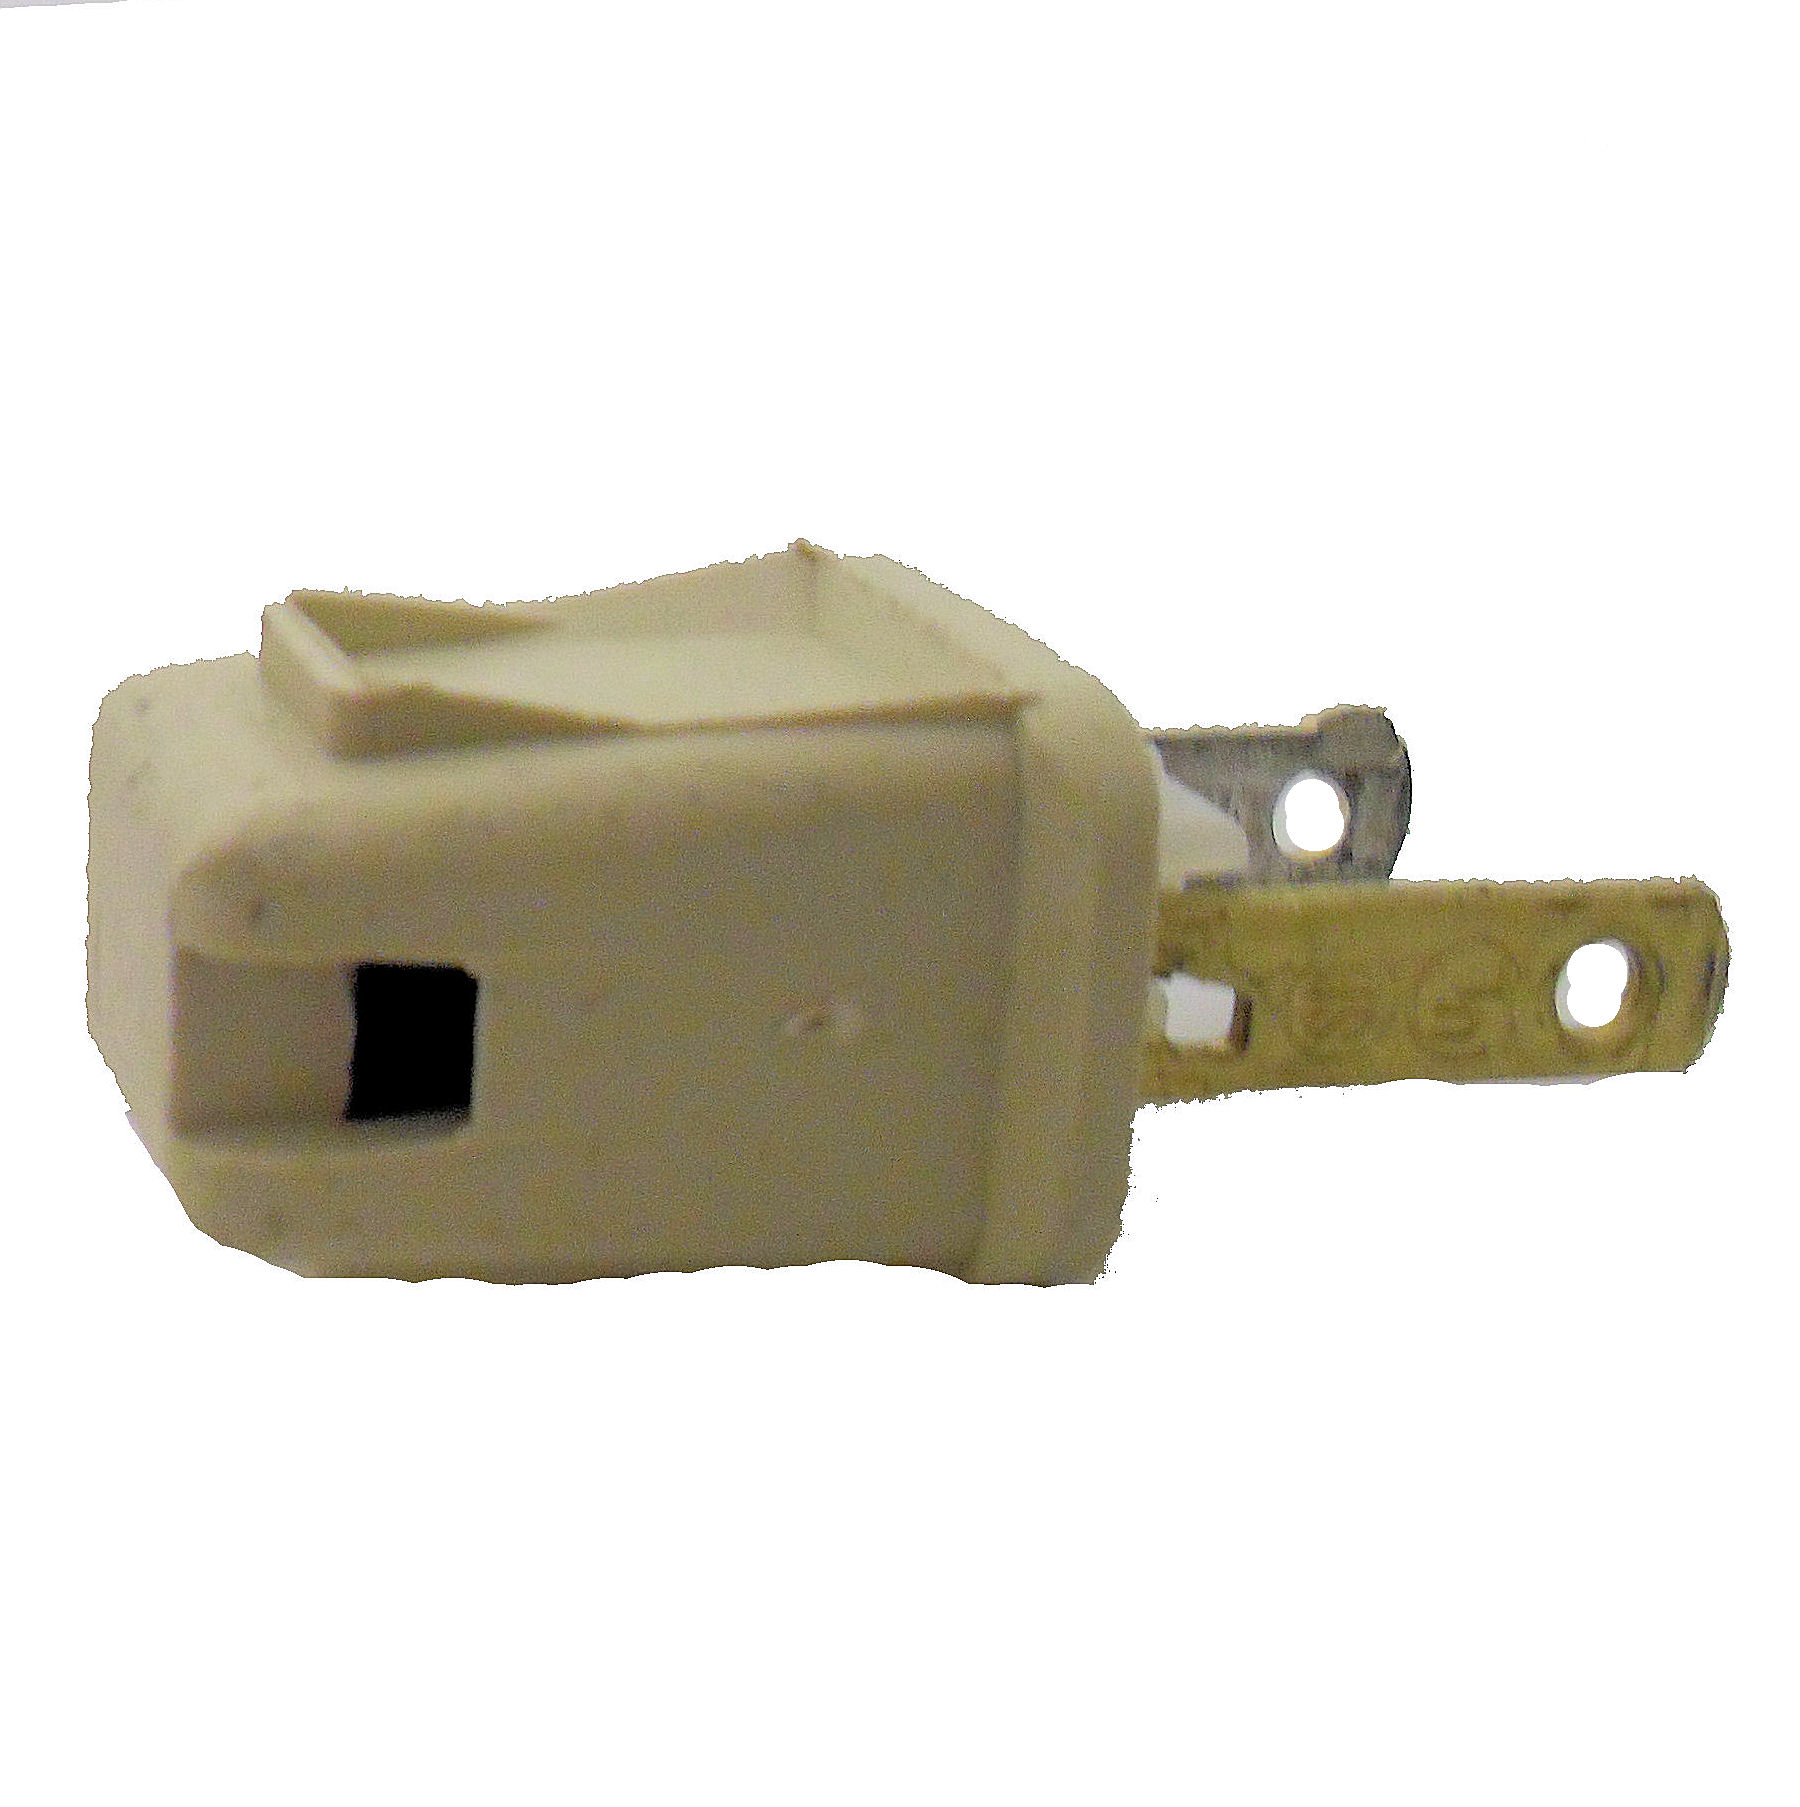 IVORY QUICK-CONNECT SPT-1 PLUGS